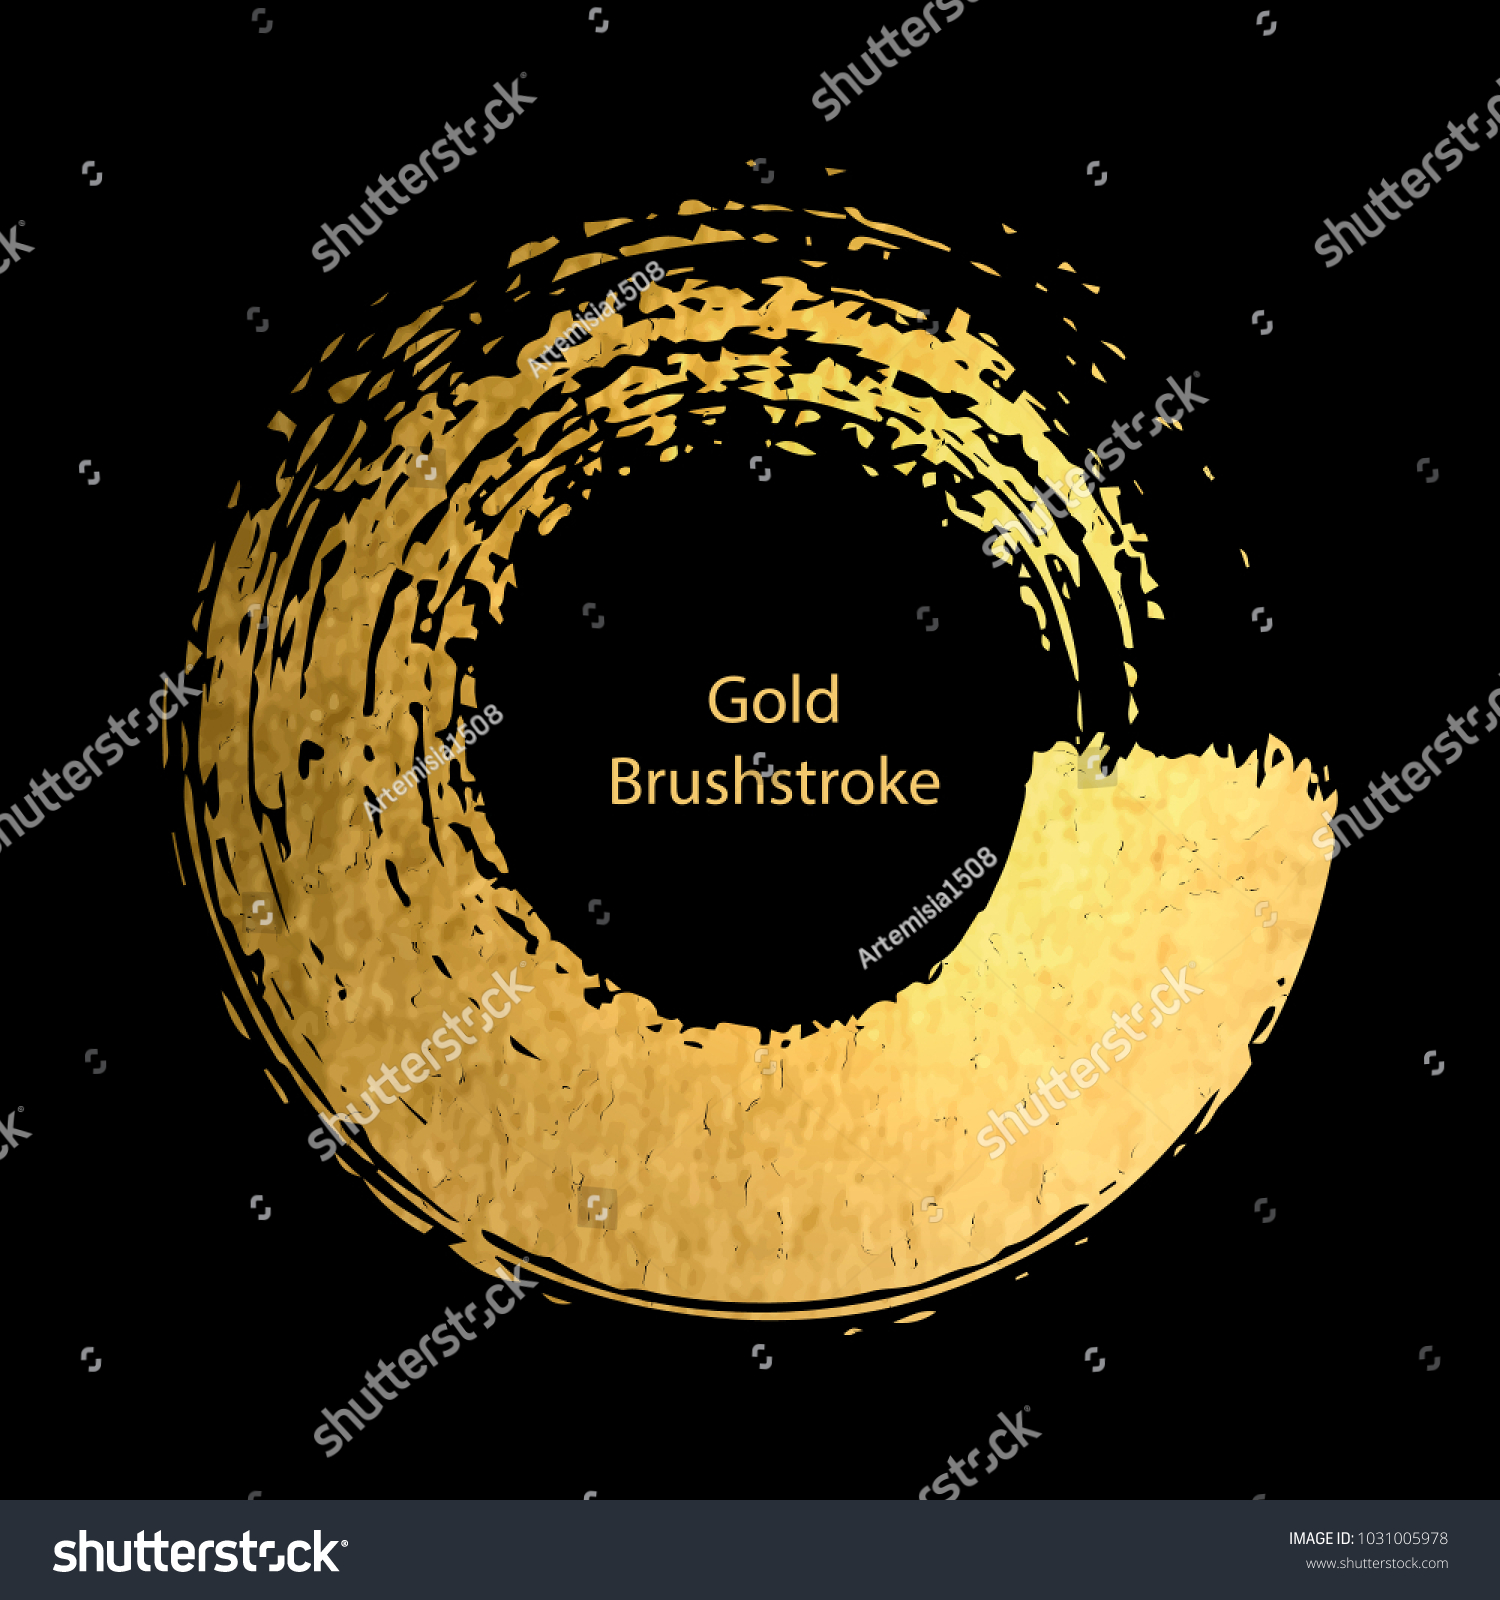 Gold round design templates poster brochure stock vector hd royalty gold round design templates for for poster brochure invitation cover book catalog stopboris Images